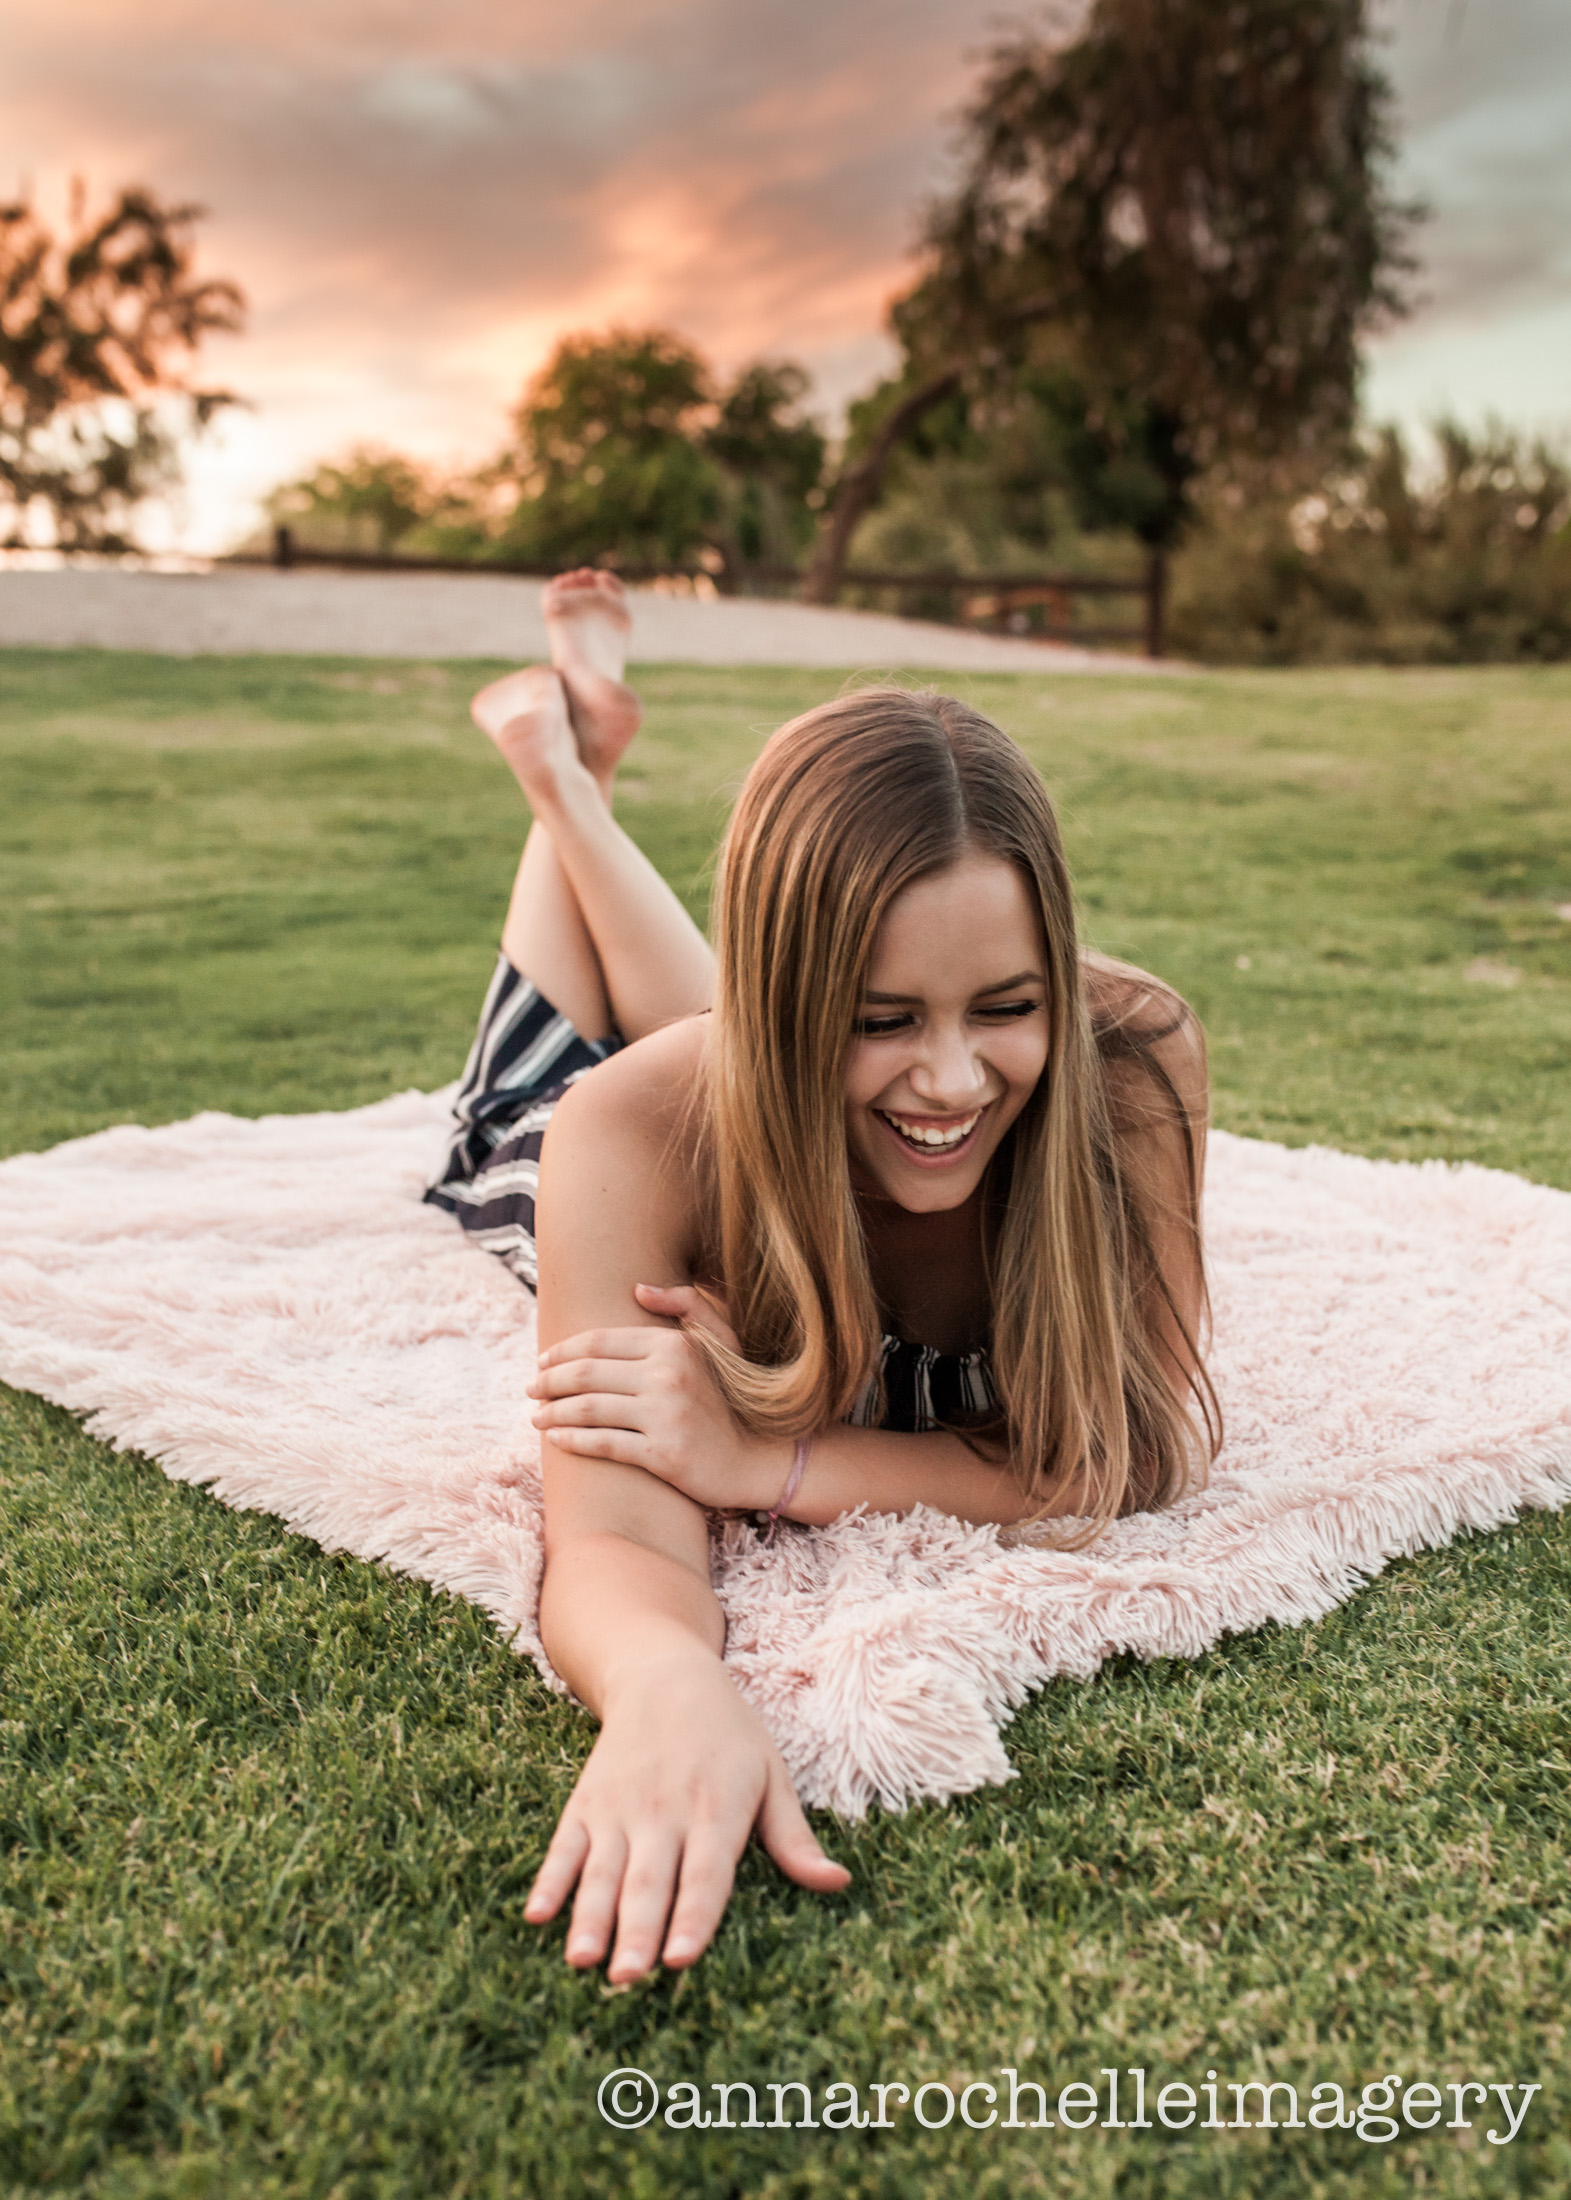 grass-pink-girl-senior-east-valley.jpg